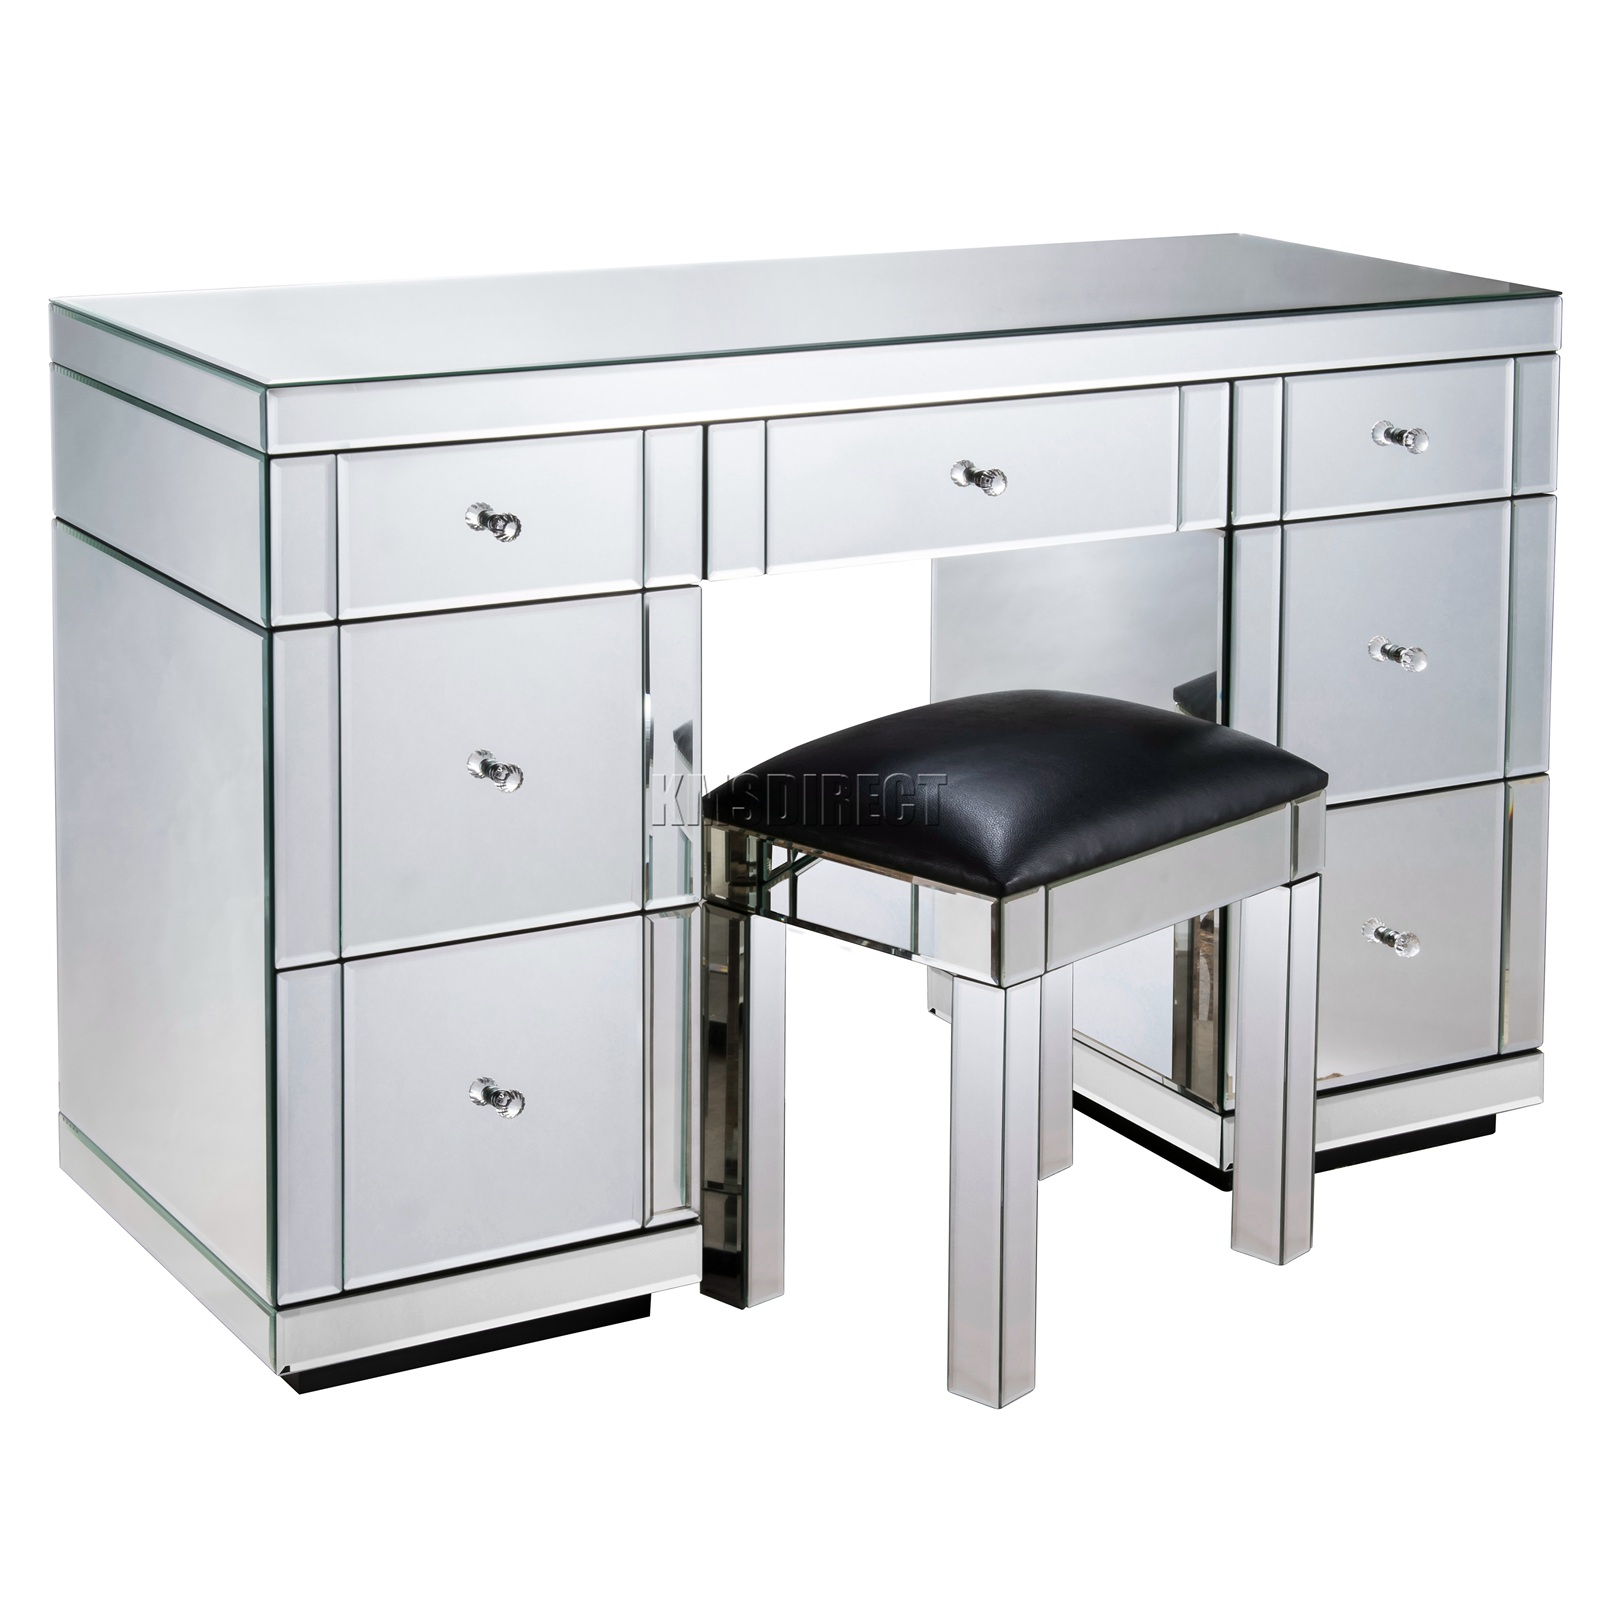 Beau Details About WestWood Mirrored Furniture Glass Dressing Table With Drawer  Console Bedroom